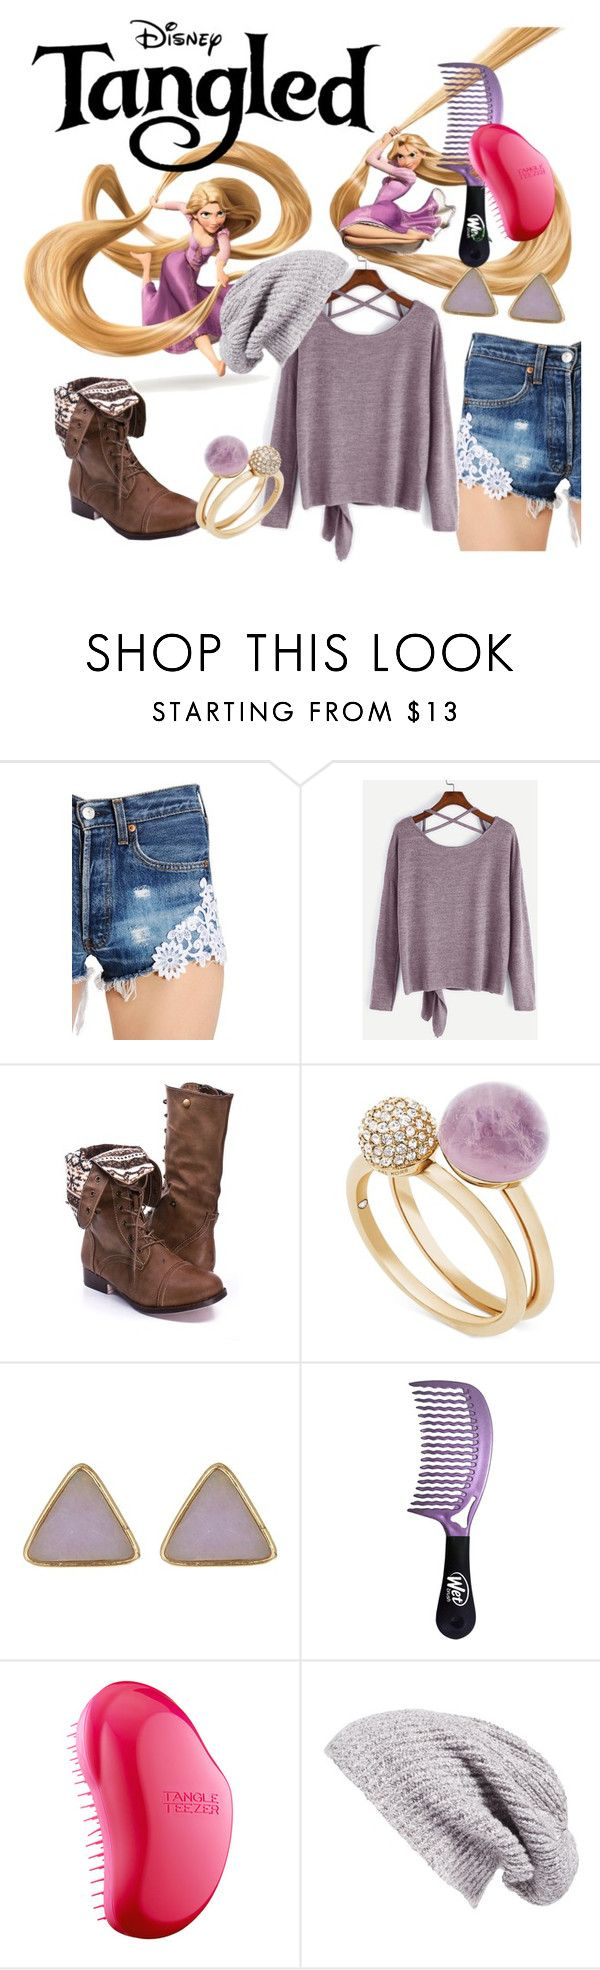 """""""Kick-ass Rapunzel"""" by fashion-film-fun ❤ liked on Polyvore featuring Disney, Forte Couture, Michael Kors, 14th & Union, Tangle Teezer and Caslon"""